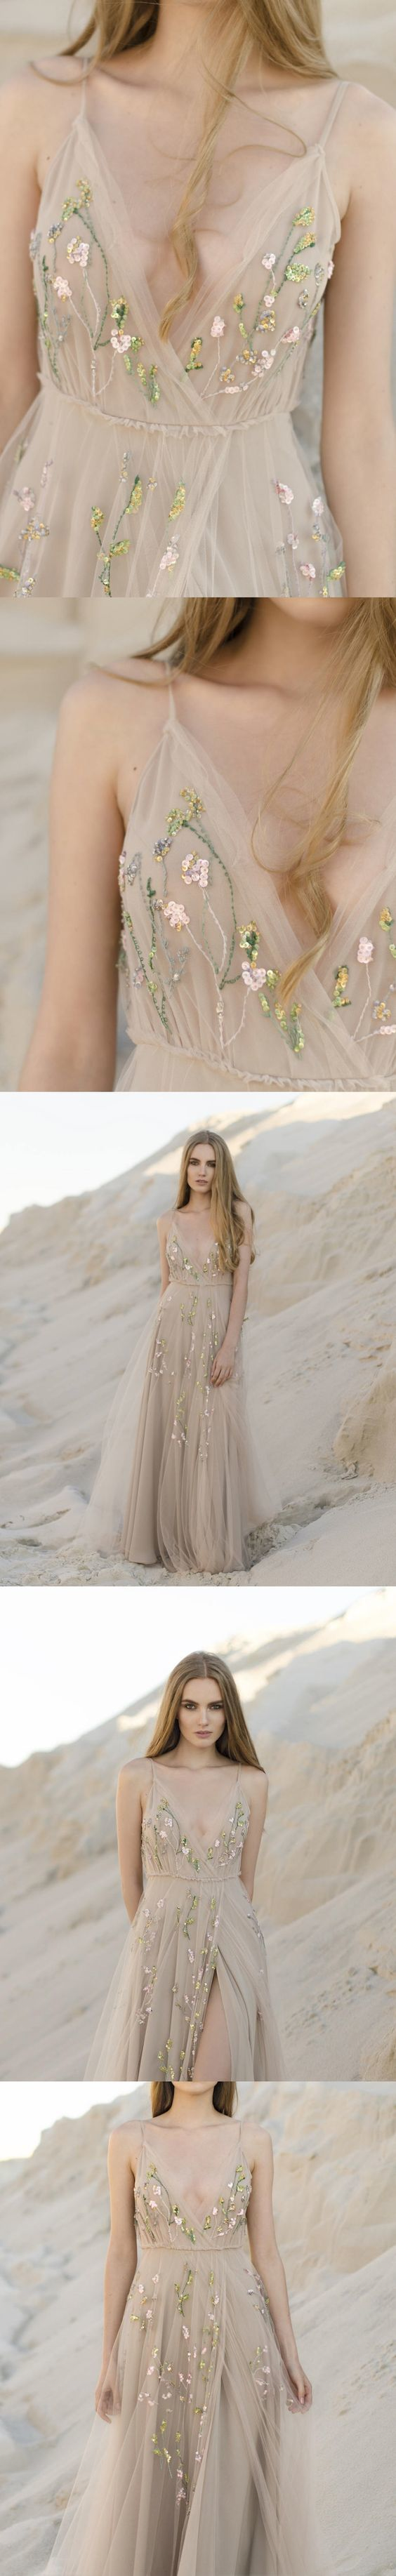 0eb1f332fc Backless Prom Dresses with Slit A Line Embroidery Beautiful Beach Open Back  Prom Dress F2907